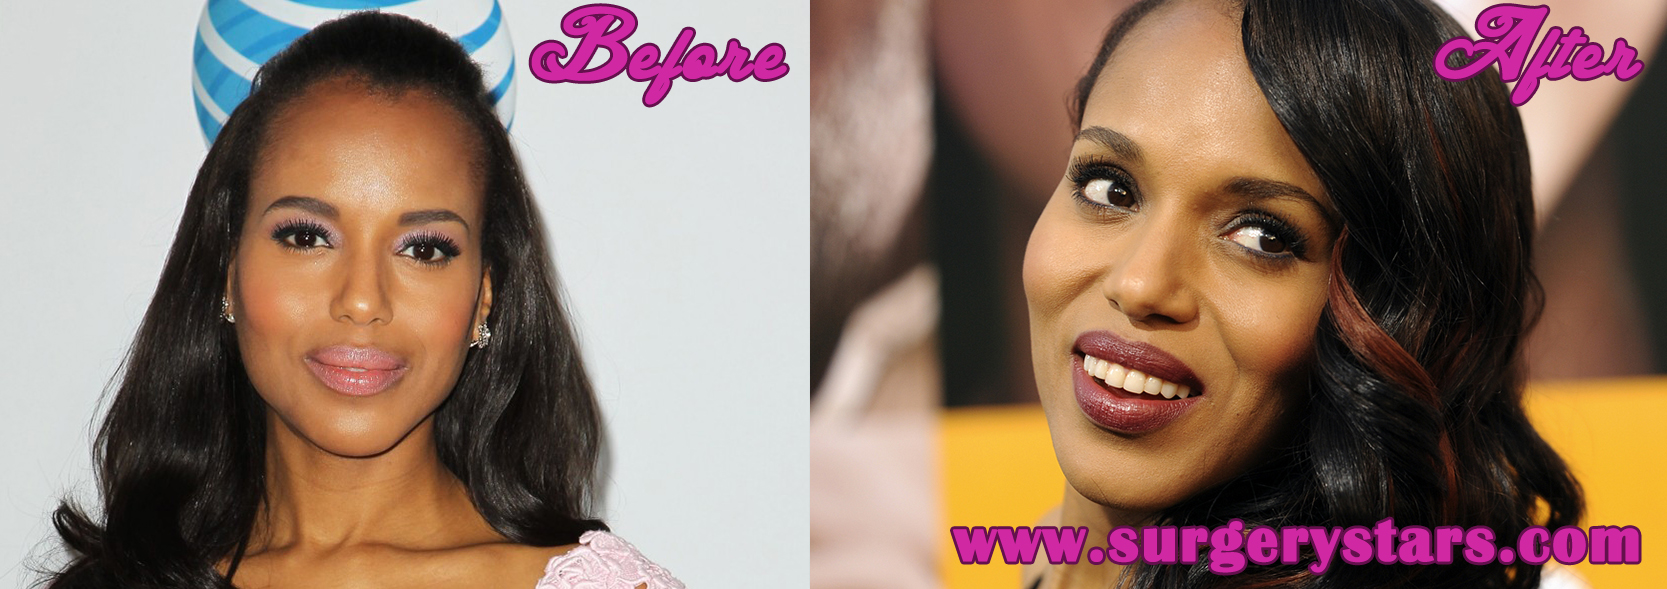 Kerry Washington Before and After Plastic Surgery Photos